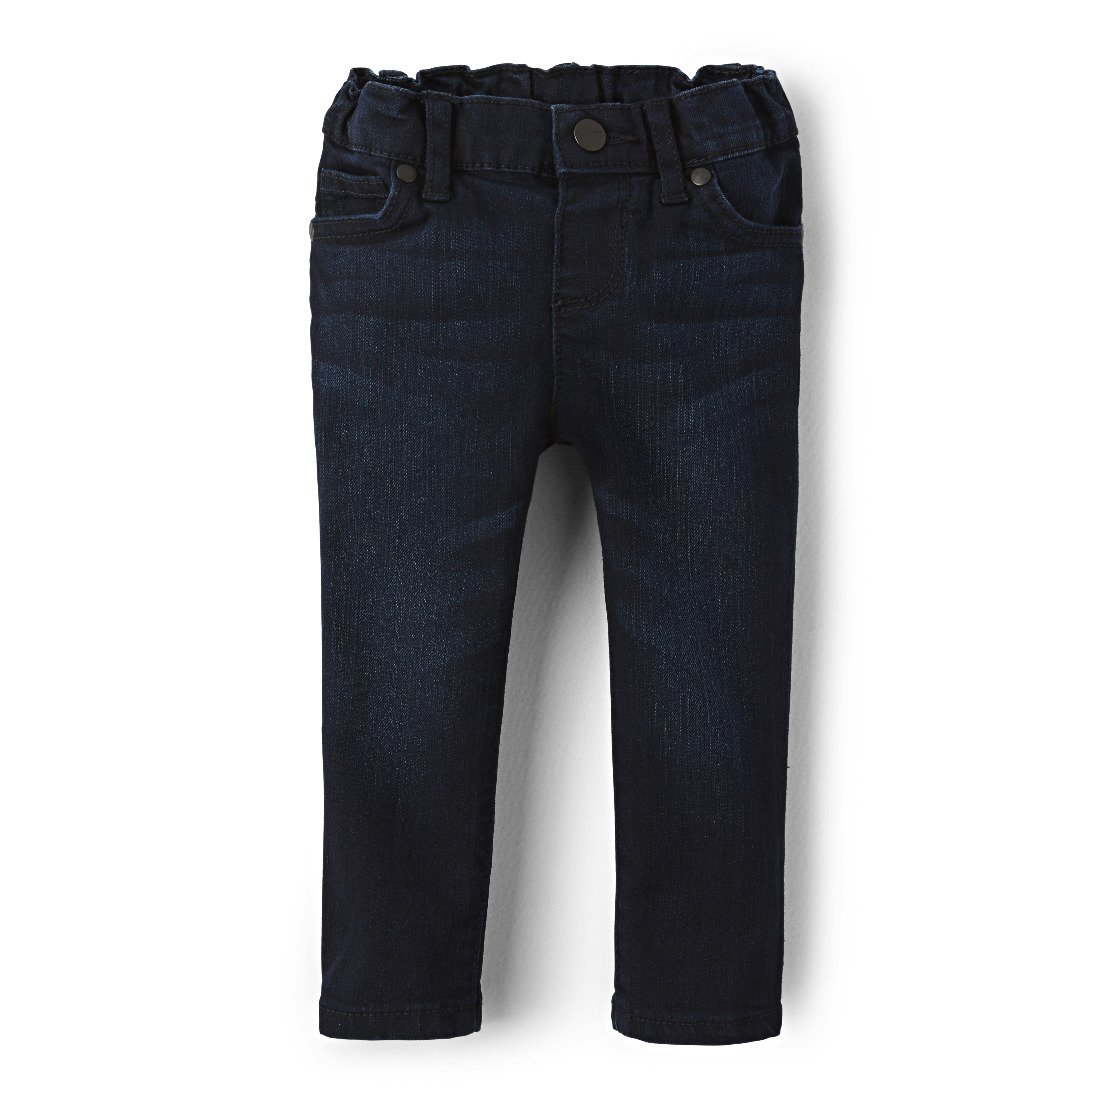 The Children's Place Baby Girls Skinny Jeans, DK Indigo 9503, 2T